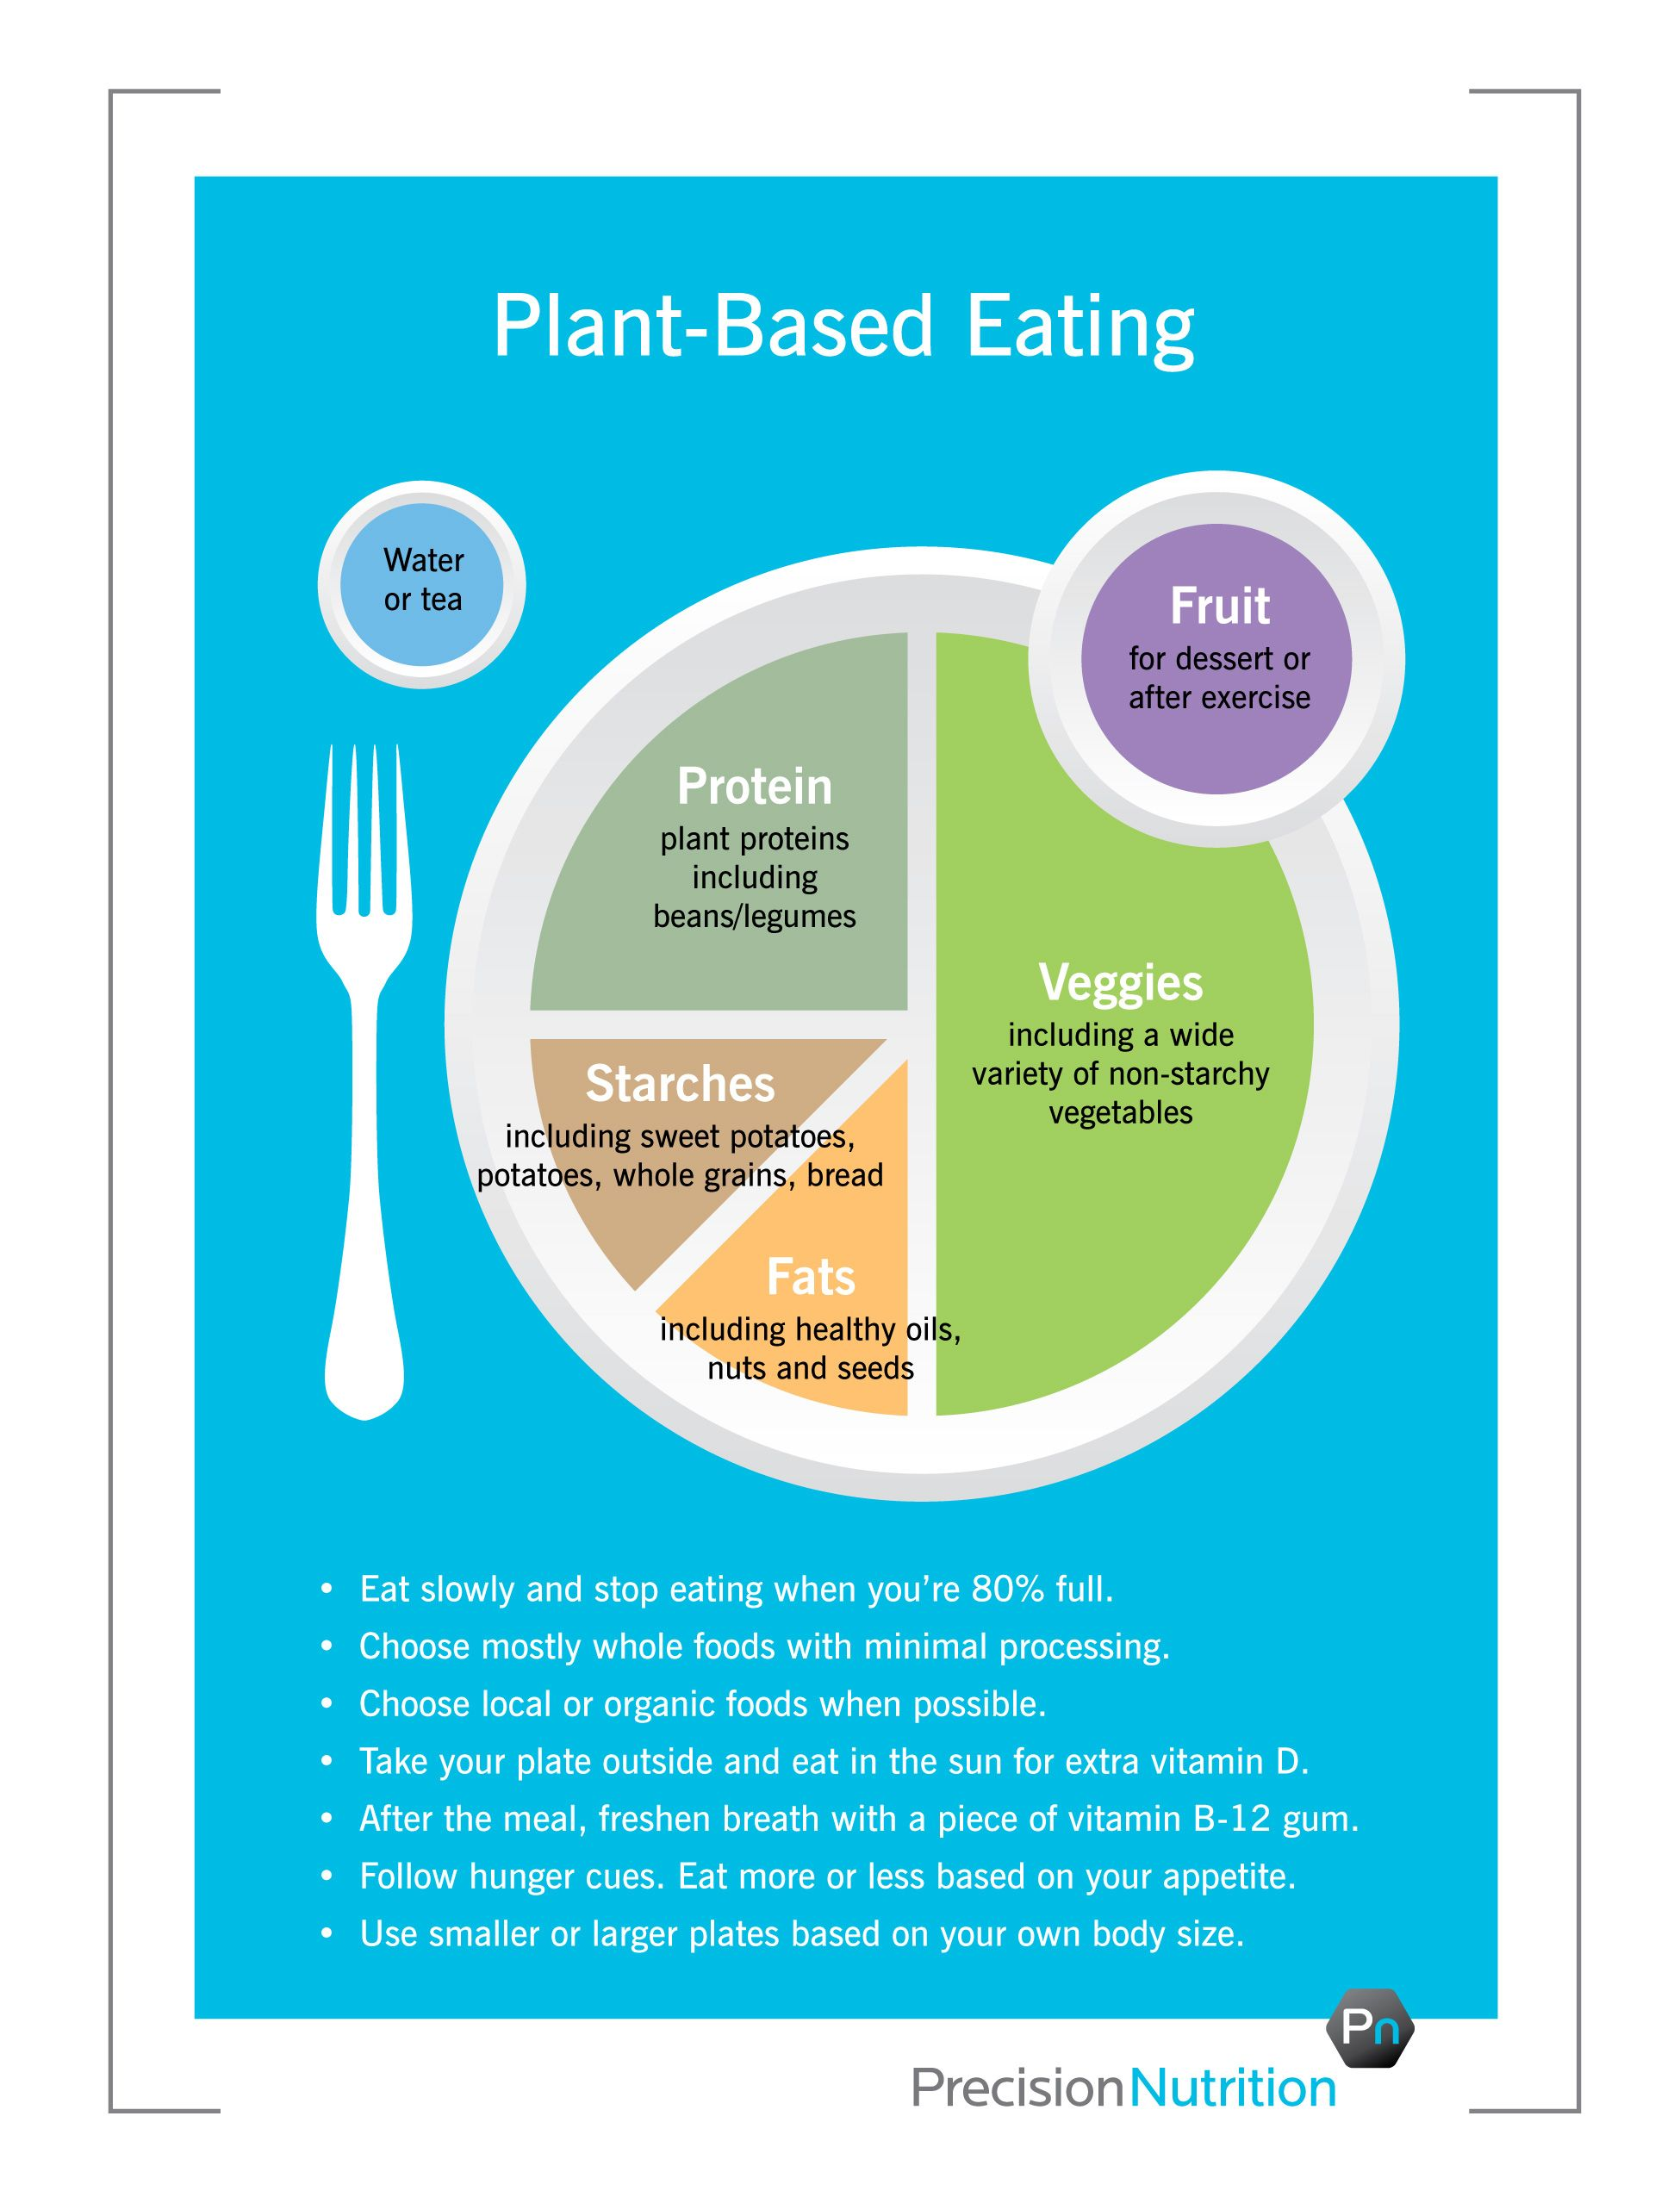 Better Version Of My Plate Precision Nutrition S Eating Guidelines For Clients Precision Nutrition Plant Based Nutrition Vegan Nutrition Plant Based Diet